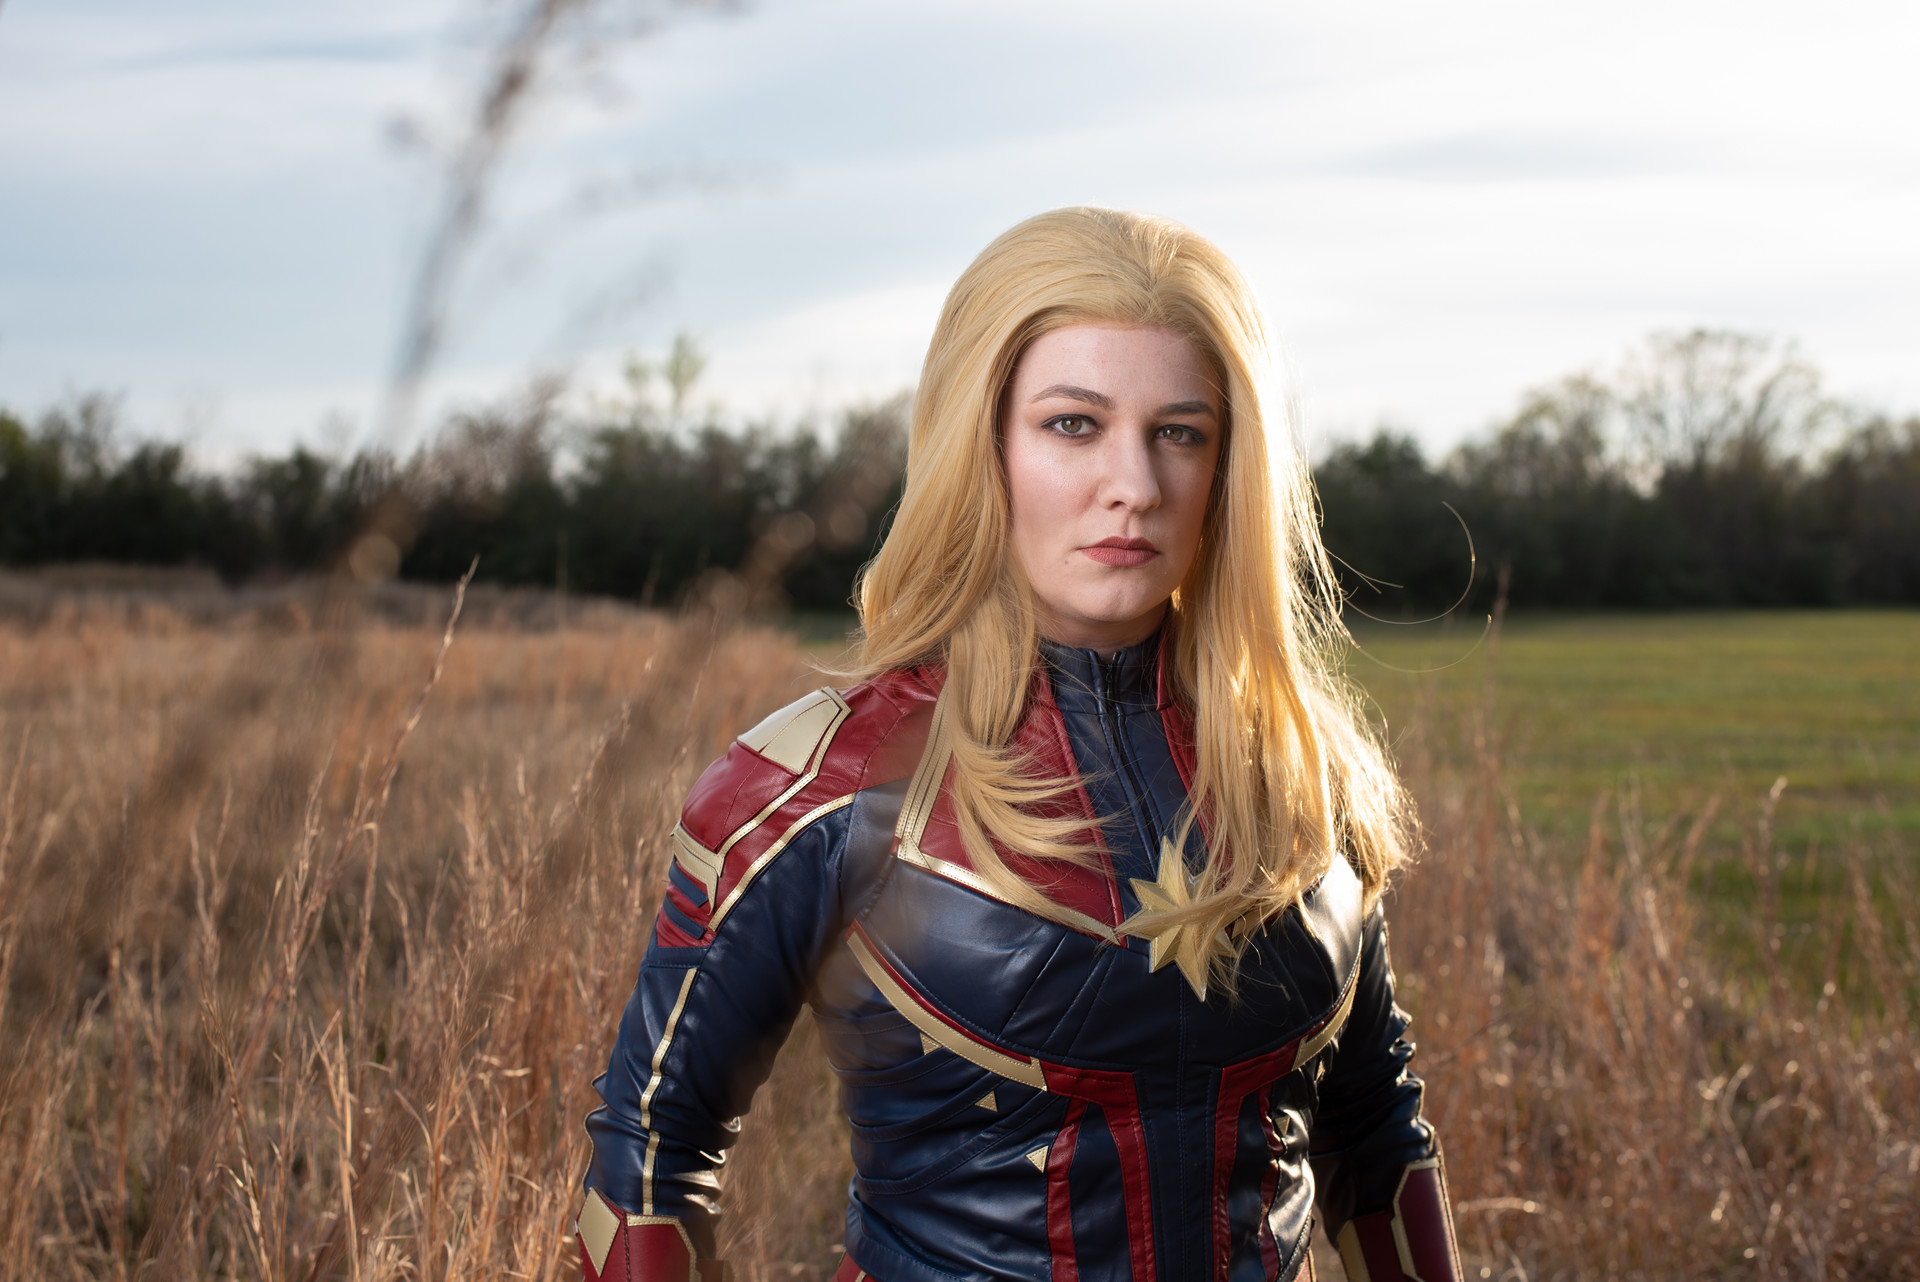 Captain Marvel cosplayer, @noontimeshadows